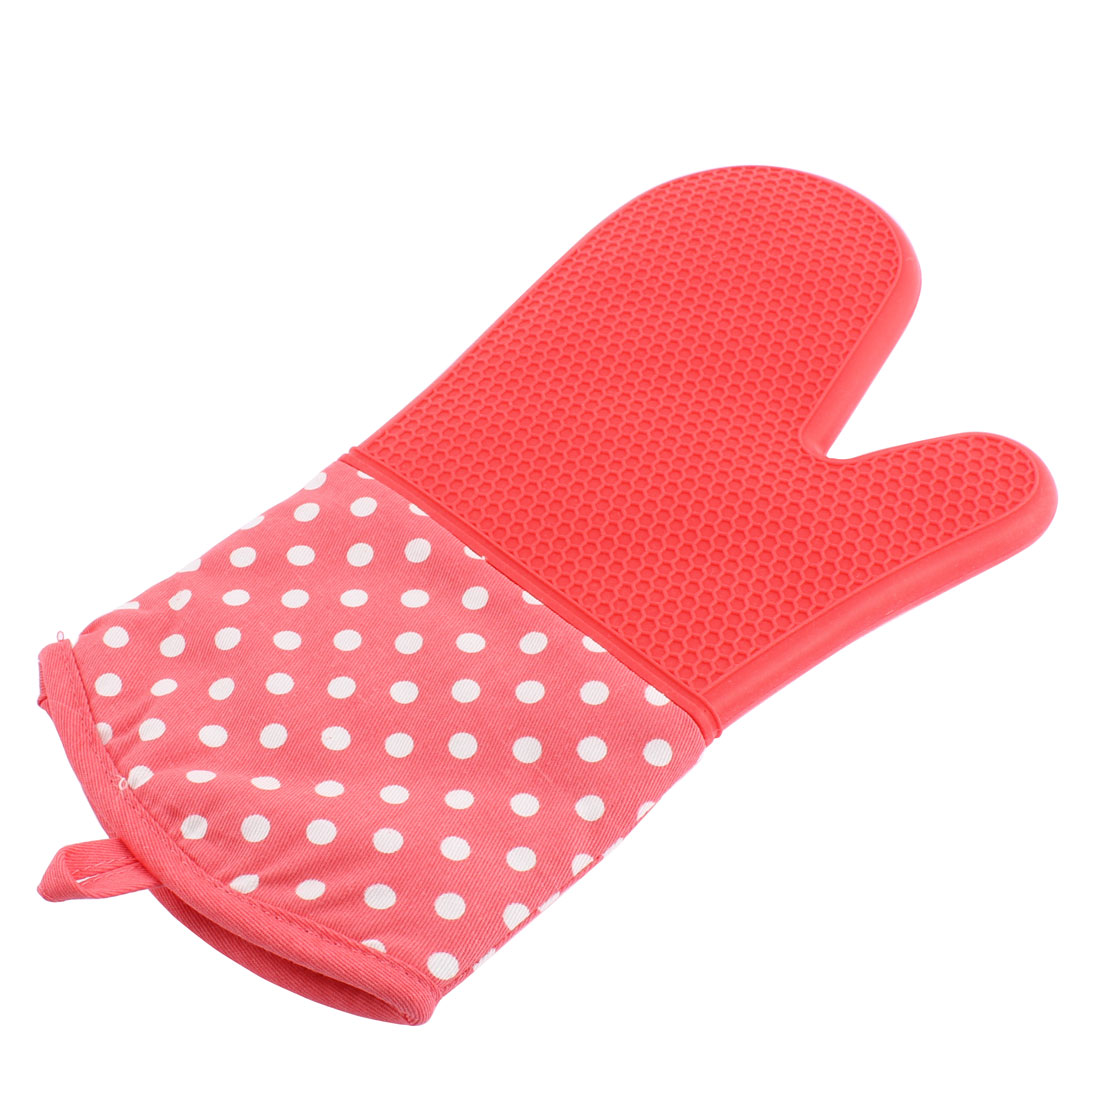 Home Kitchen Dots Pattern Heat Resistance Oven Mitt Glove Pink